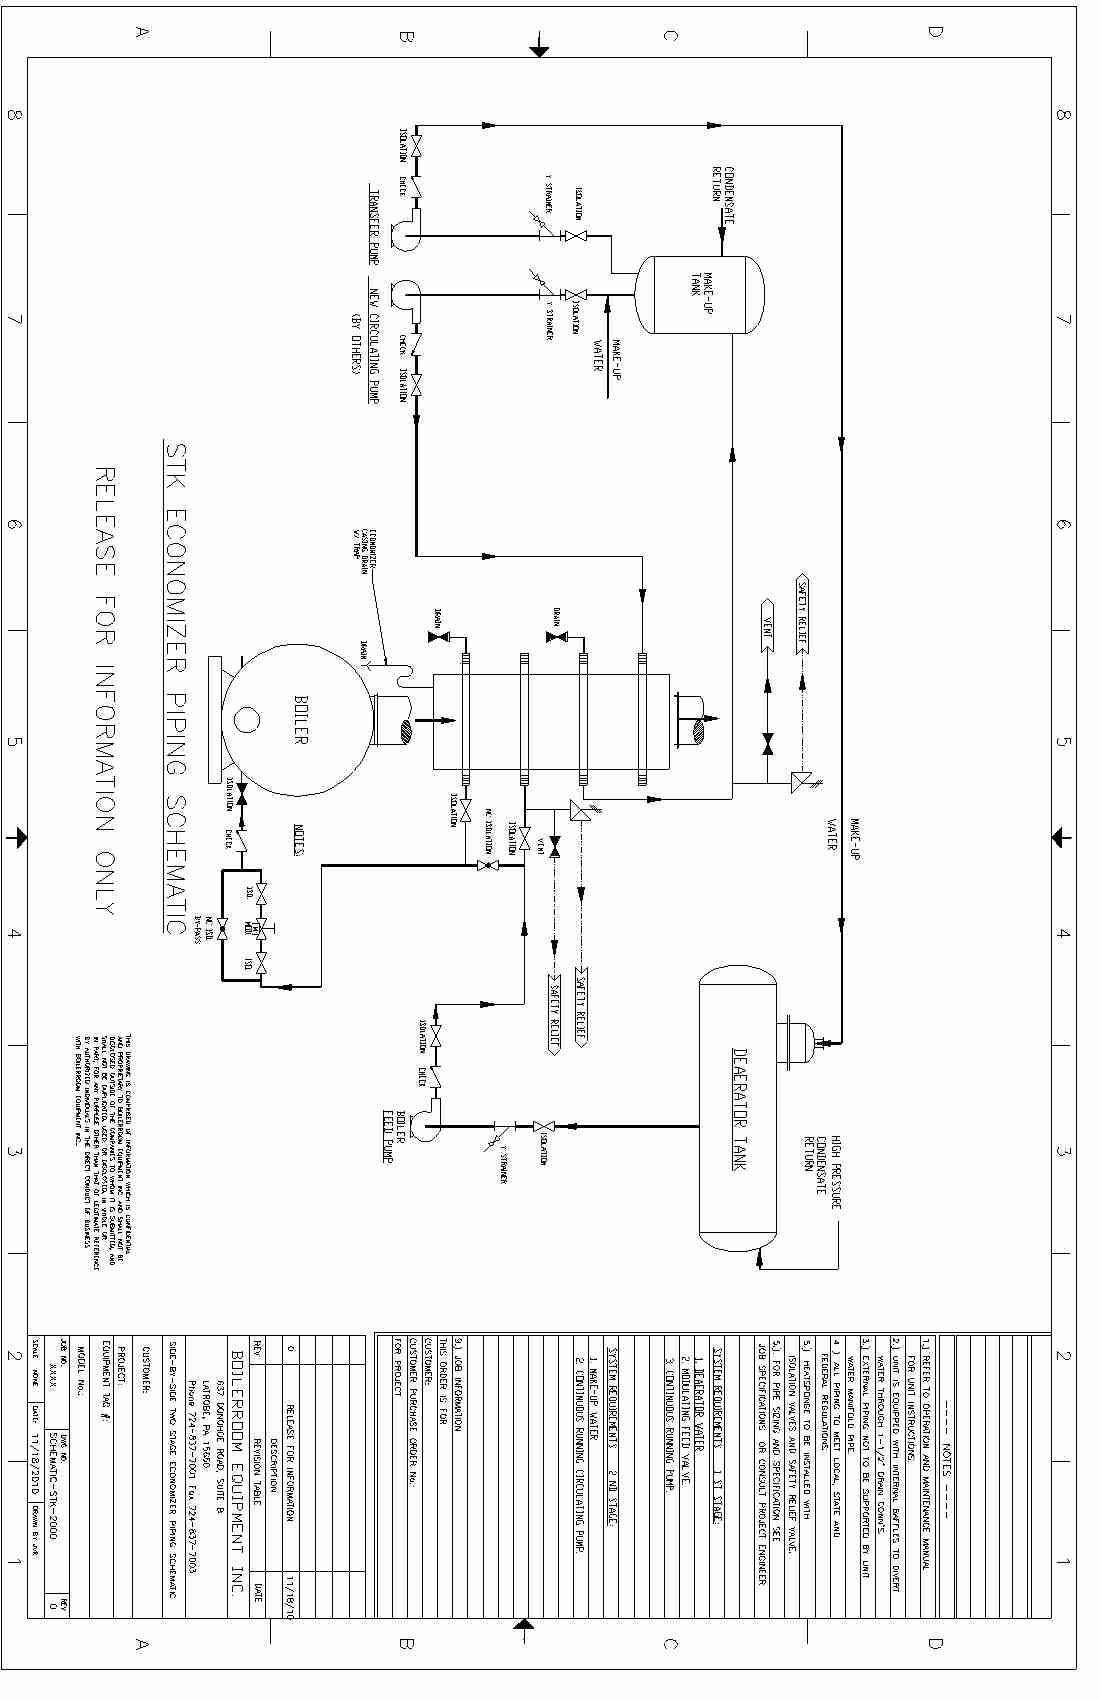 hight resolution of condensing boiler condensing boiler piping schematic navien combi piping diagram navien boiler piping diagrams